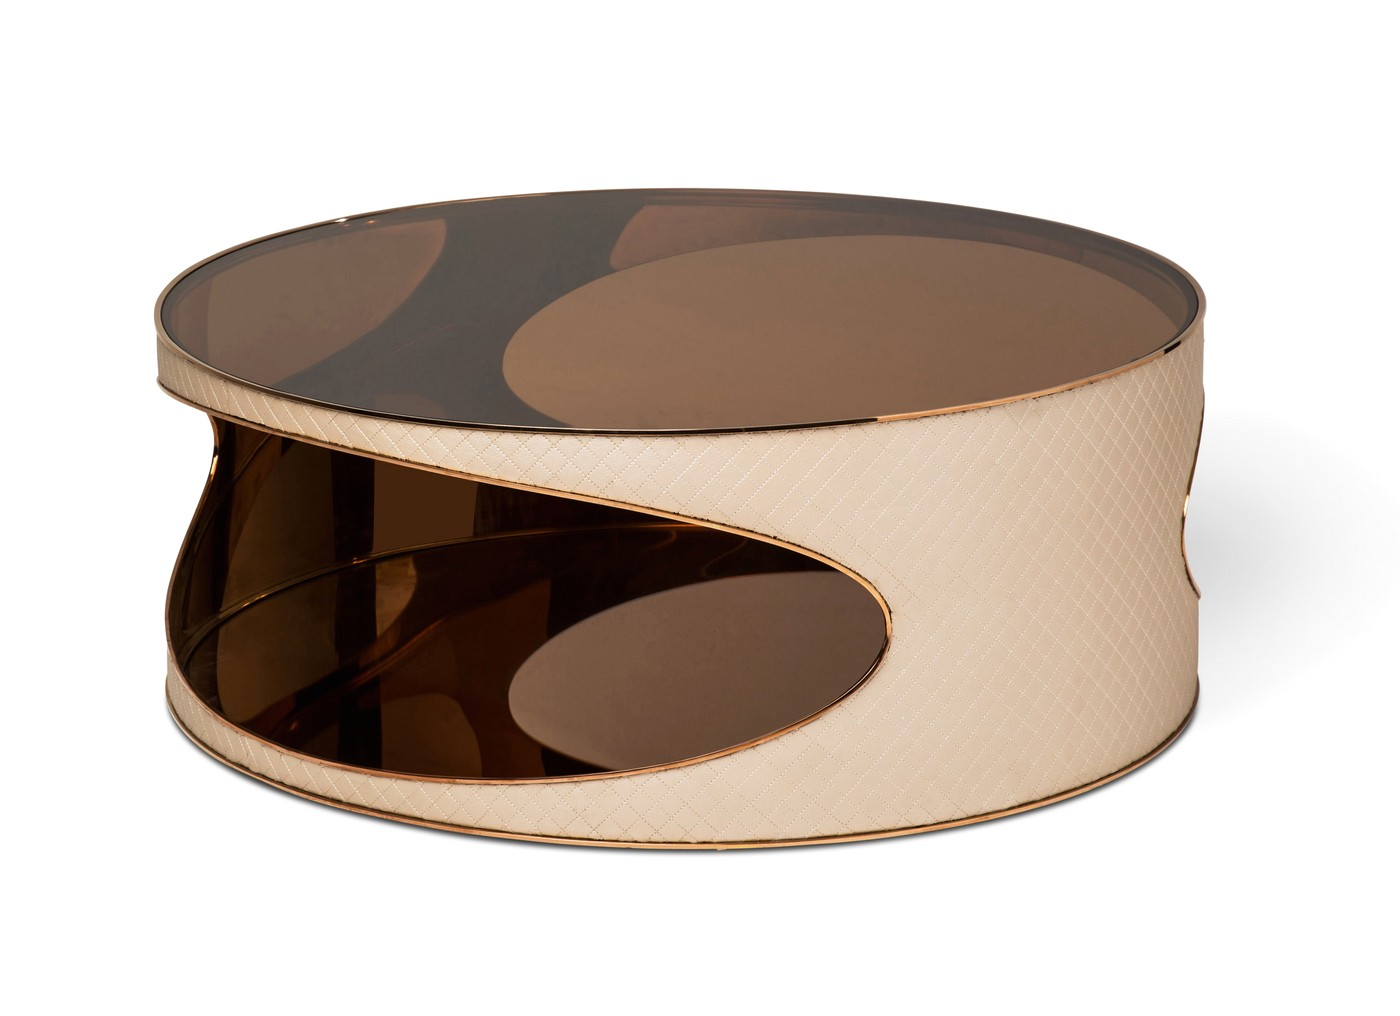 Solar Eclipse Futuristic Round Upholstered Coffee Table In Rose Gold